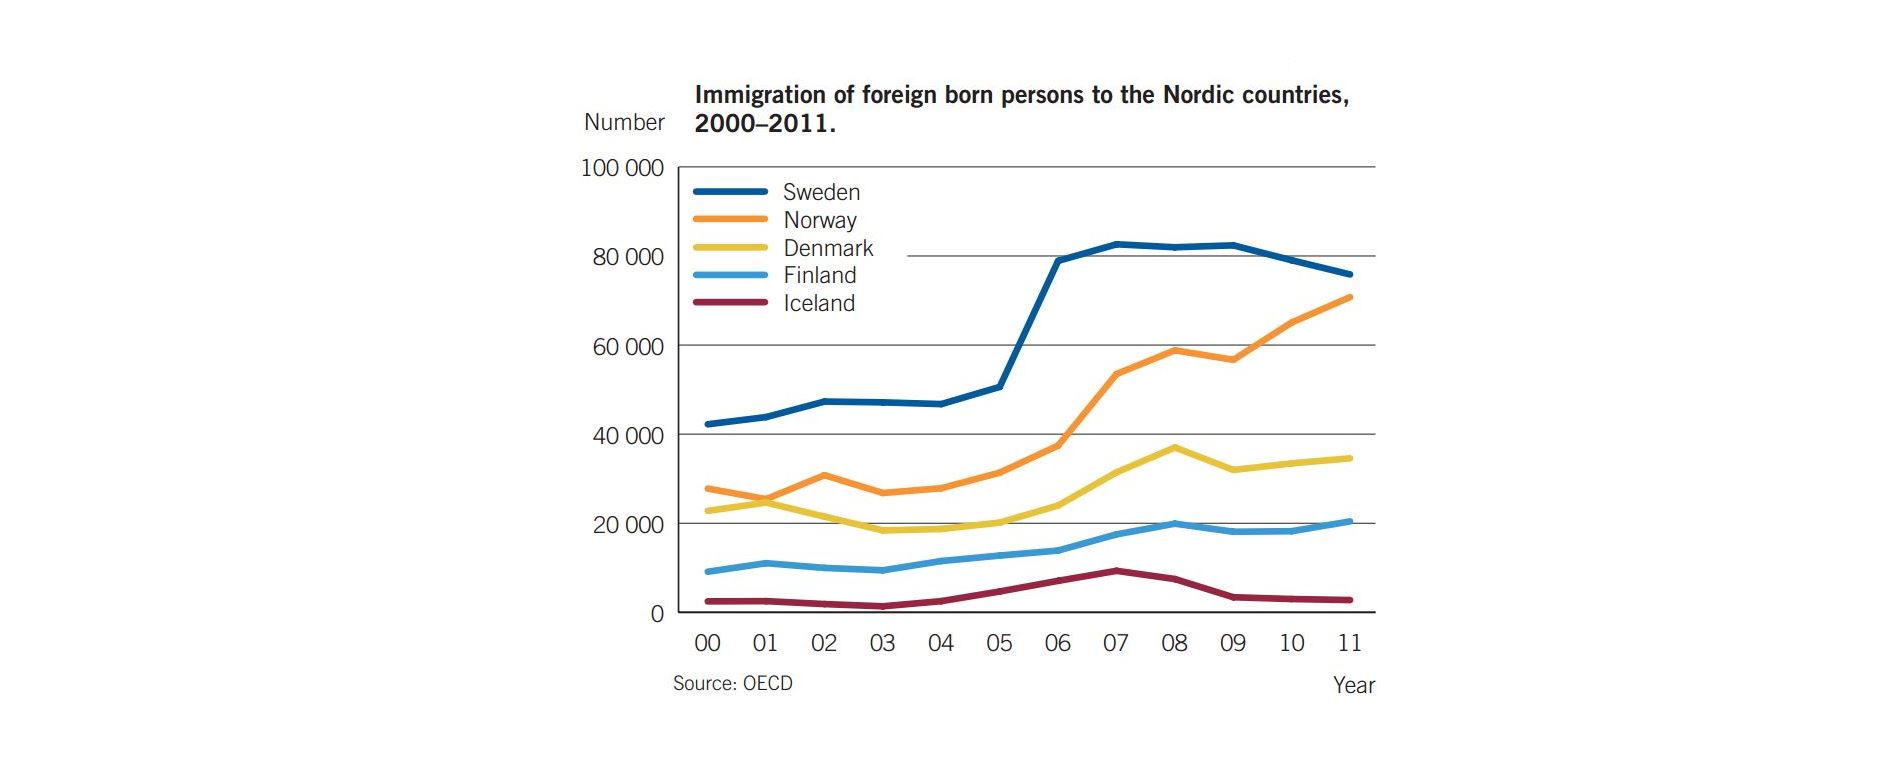 Jobs are key to all Nordic countries' integration policies